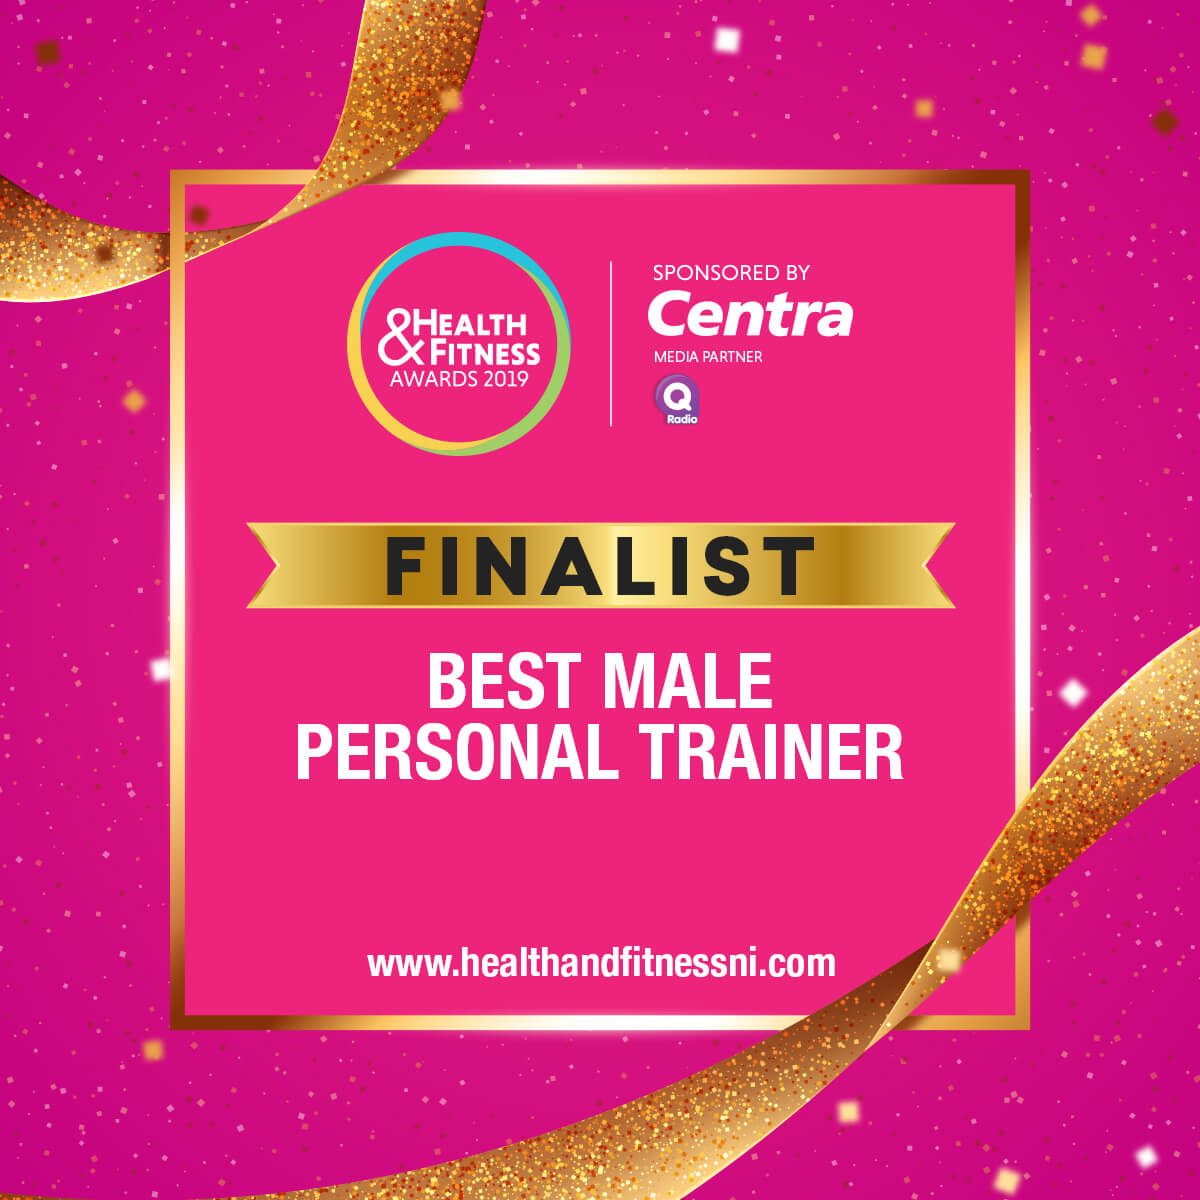 Fitness Belfast Finalist Northern Ireland Health and Fitness Awards 2019 Best Male Personal Trainer 2019.jpg